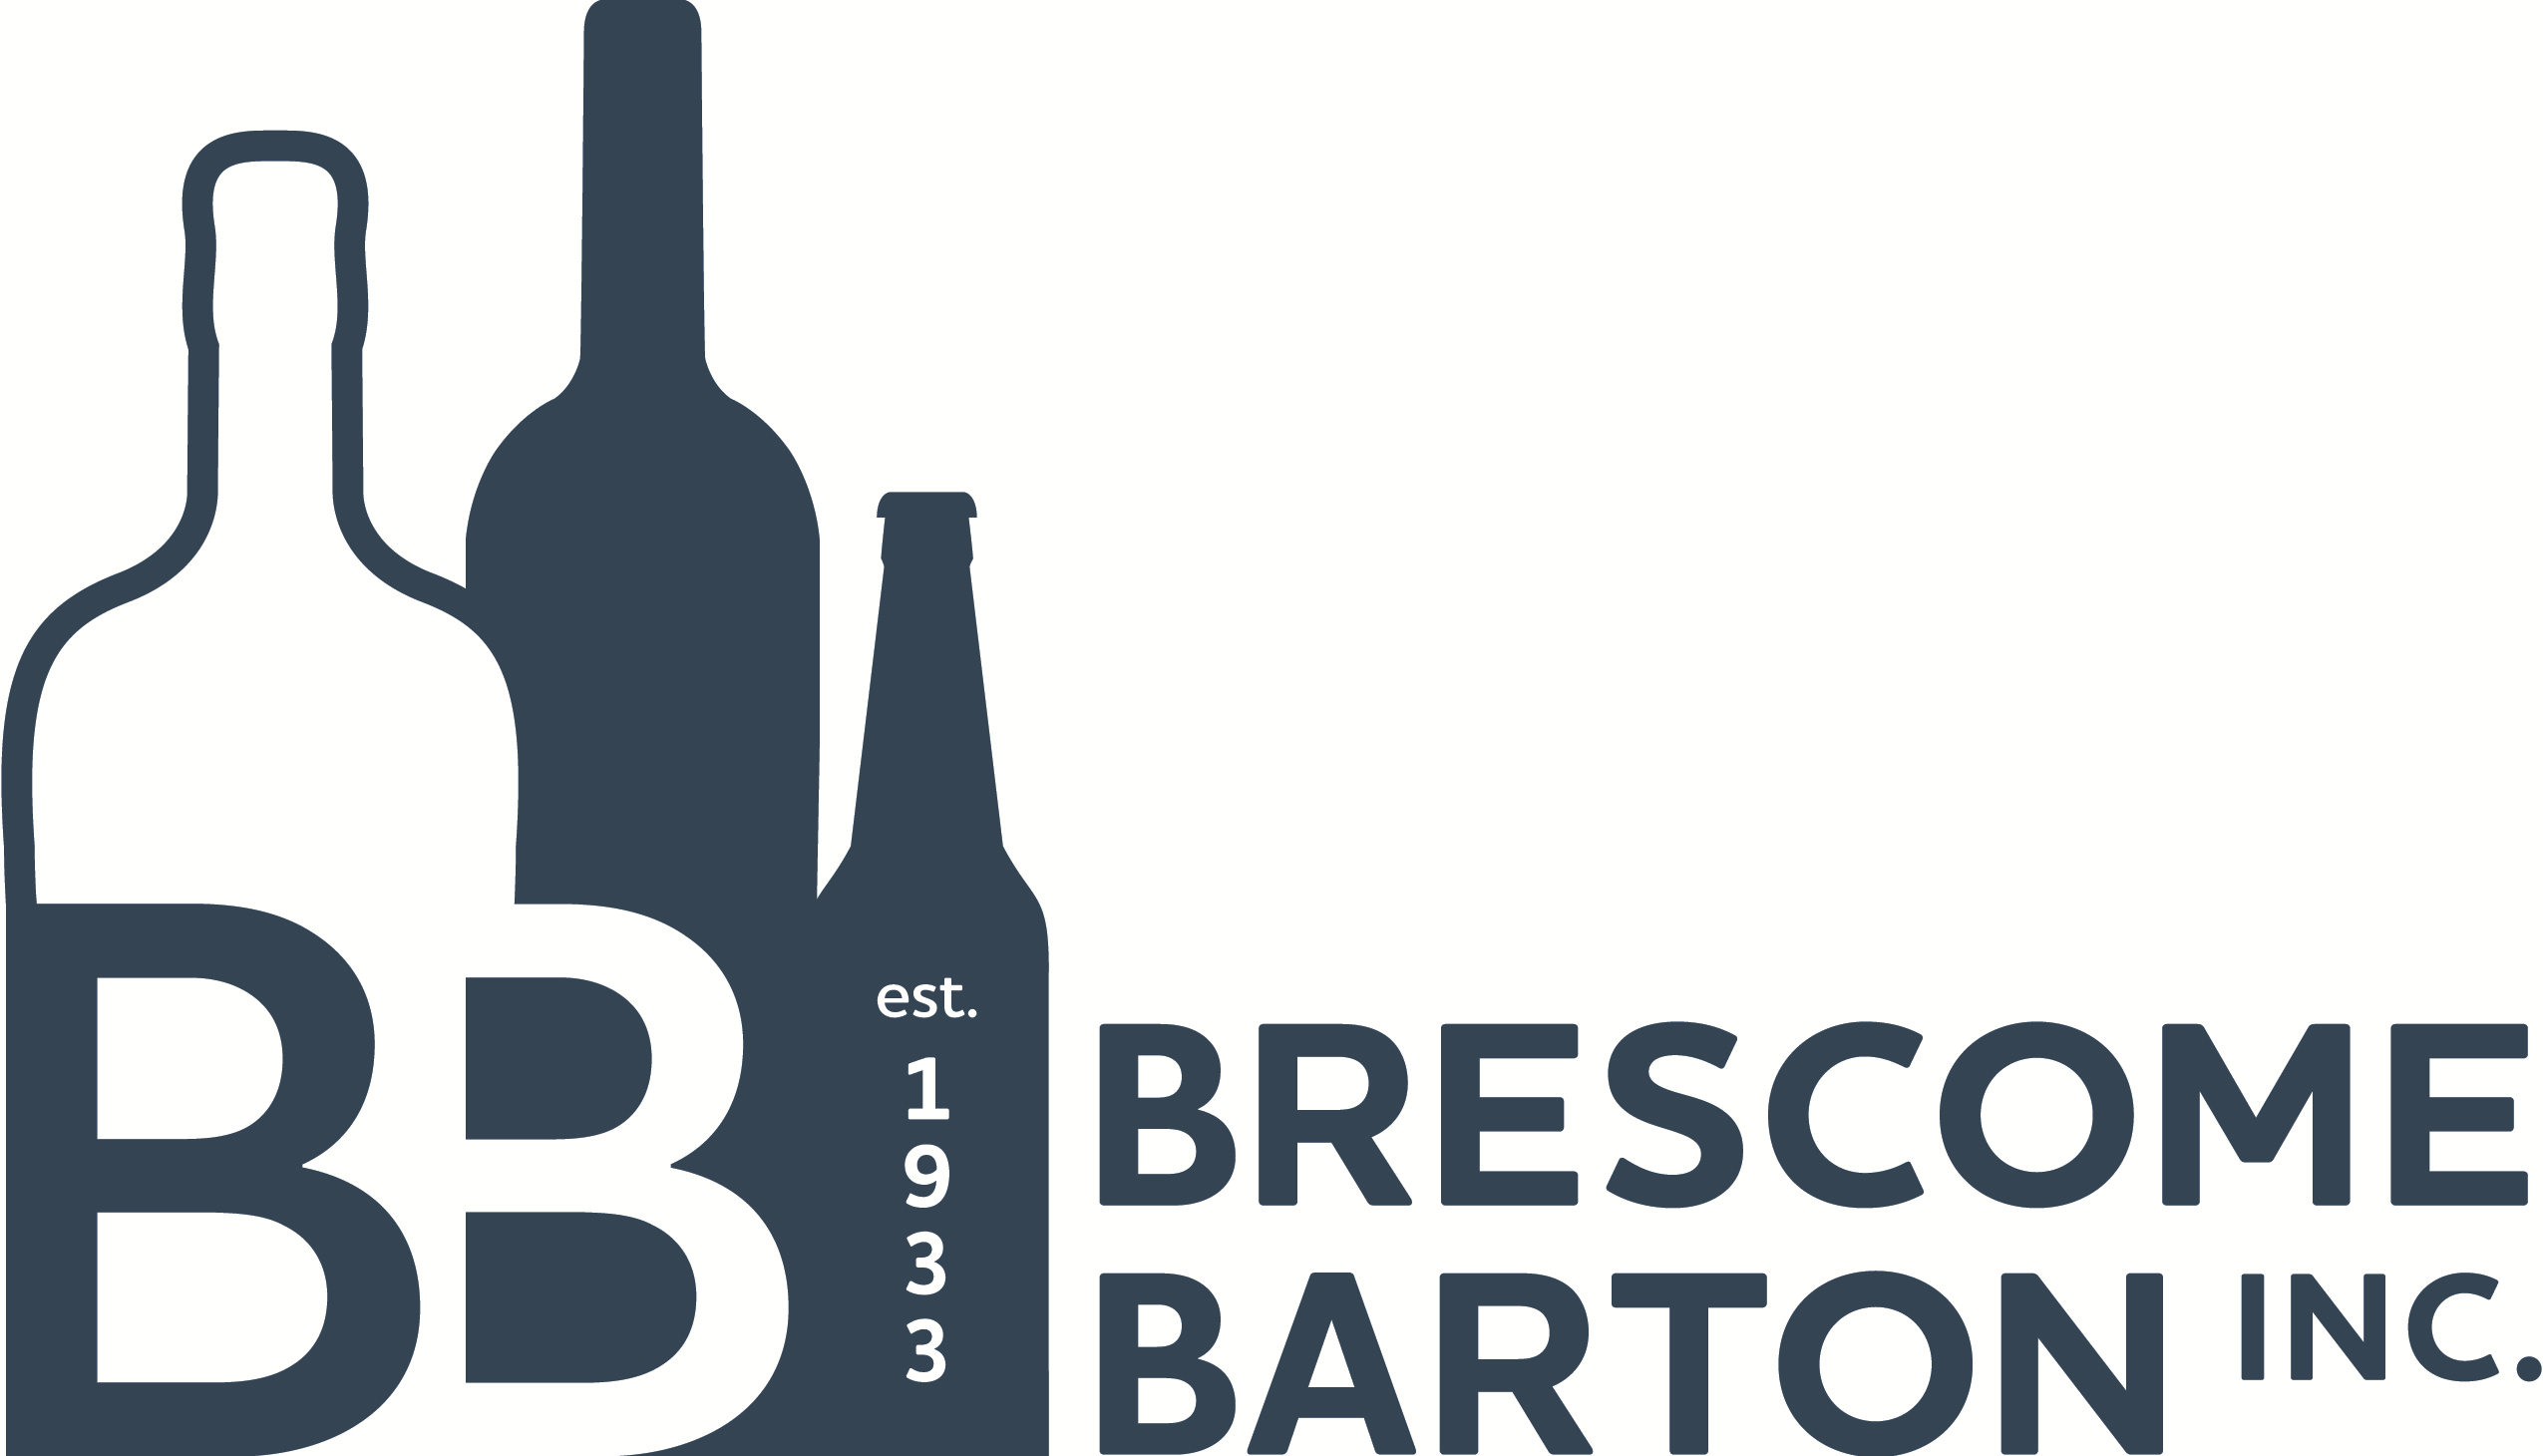 October 10, 2017: Brescome Barton's Octoberfest Tasting (Trade Only)